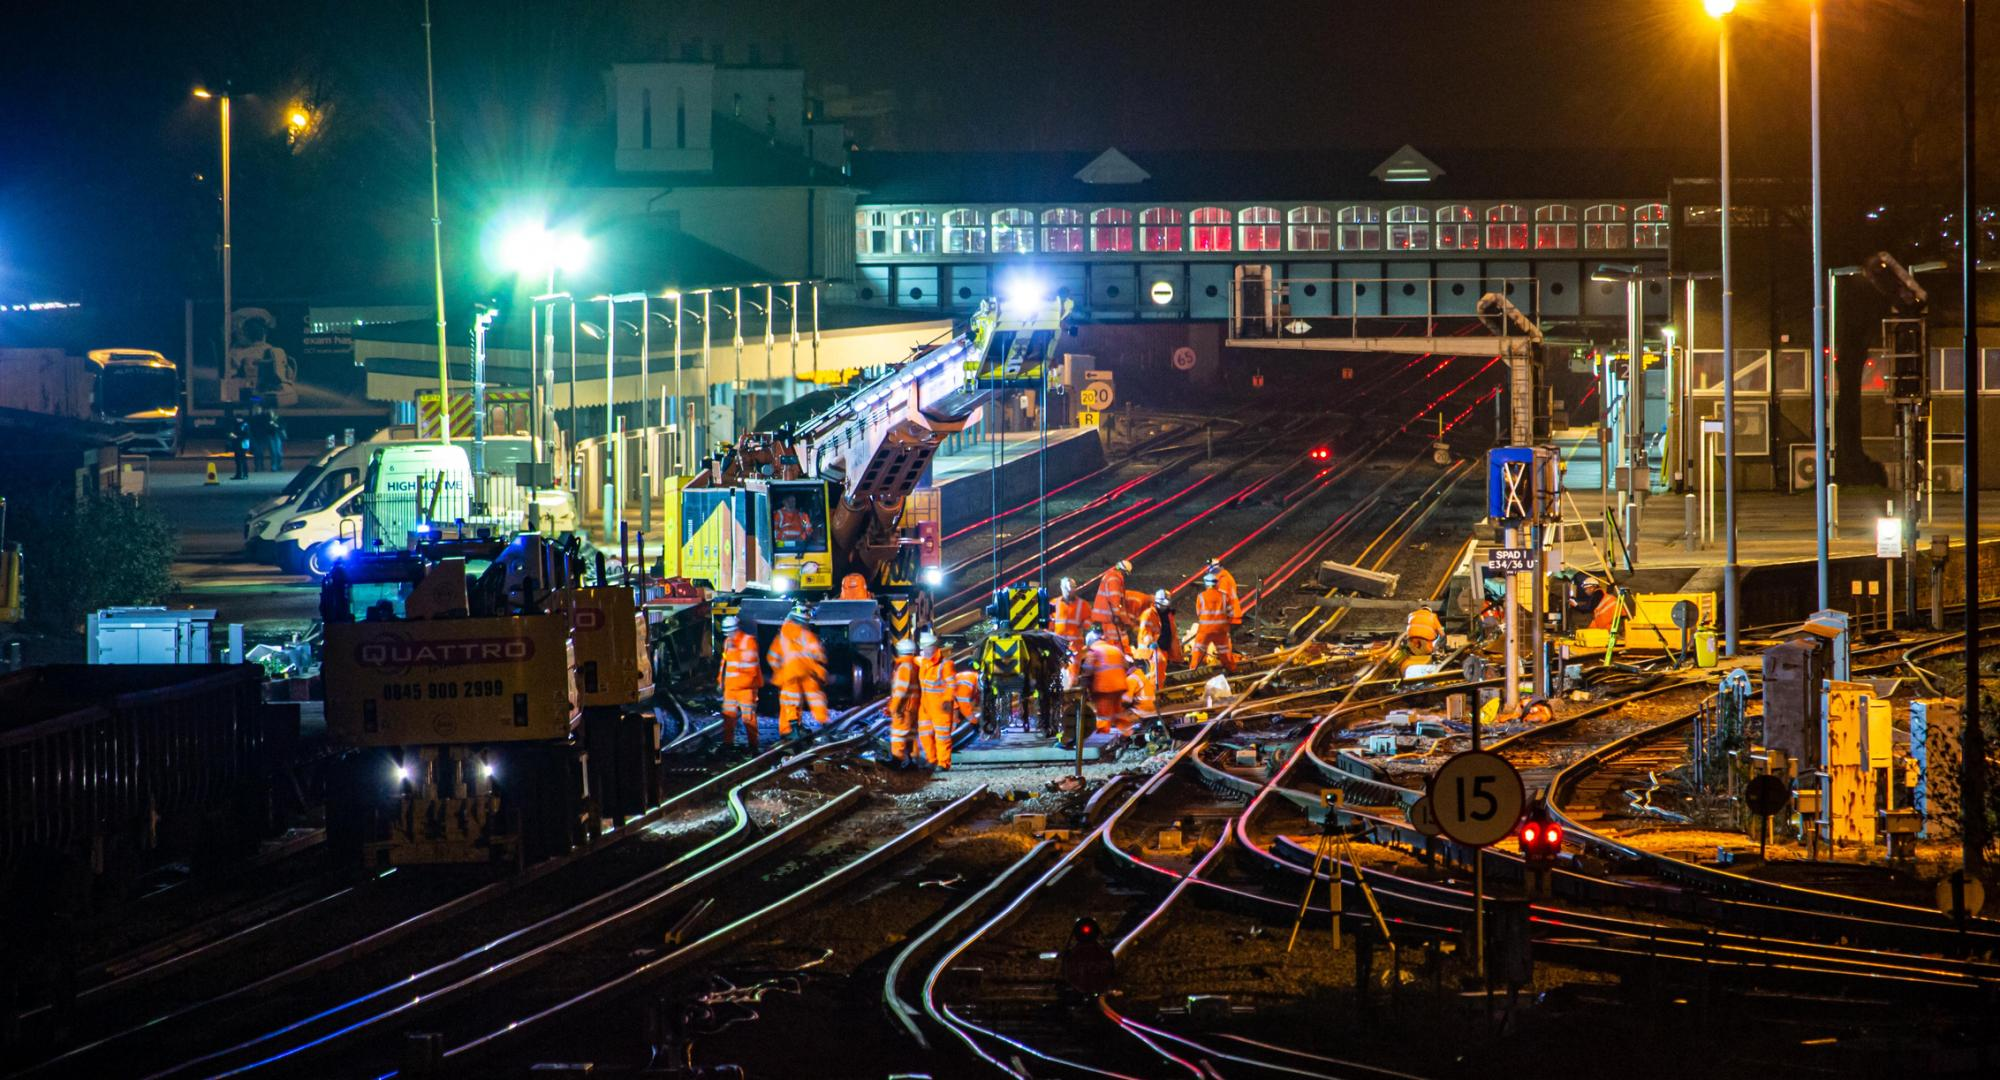 Network Rail engineers working on site